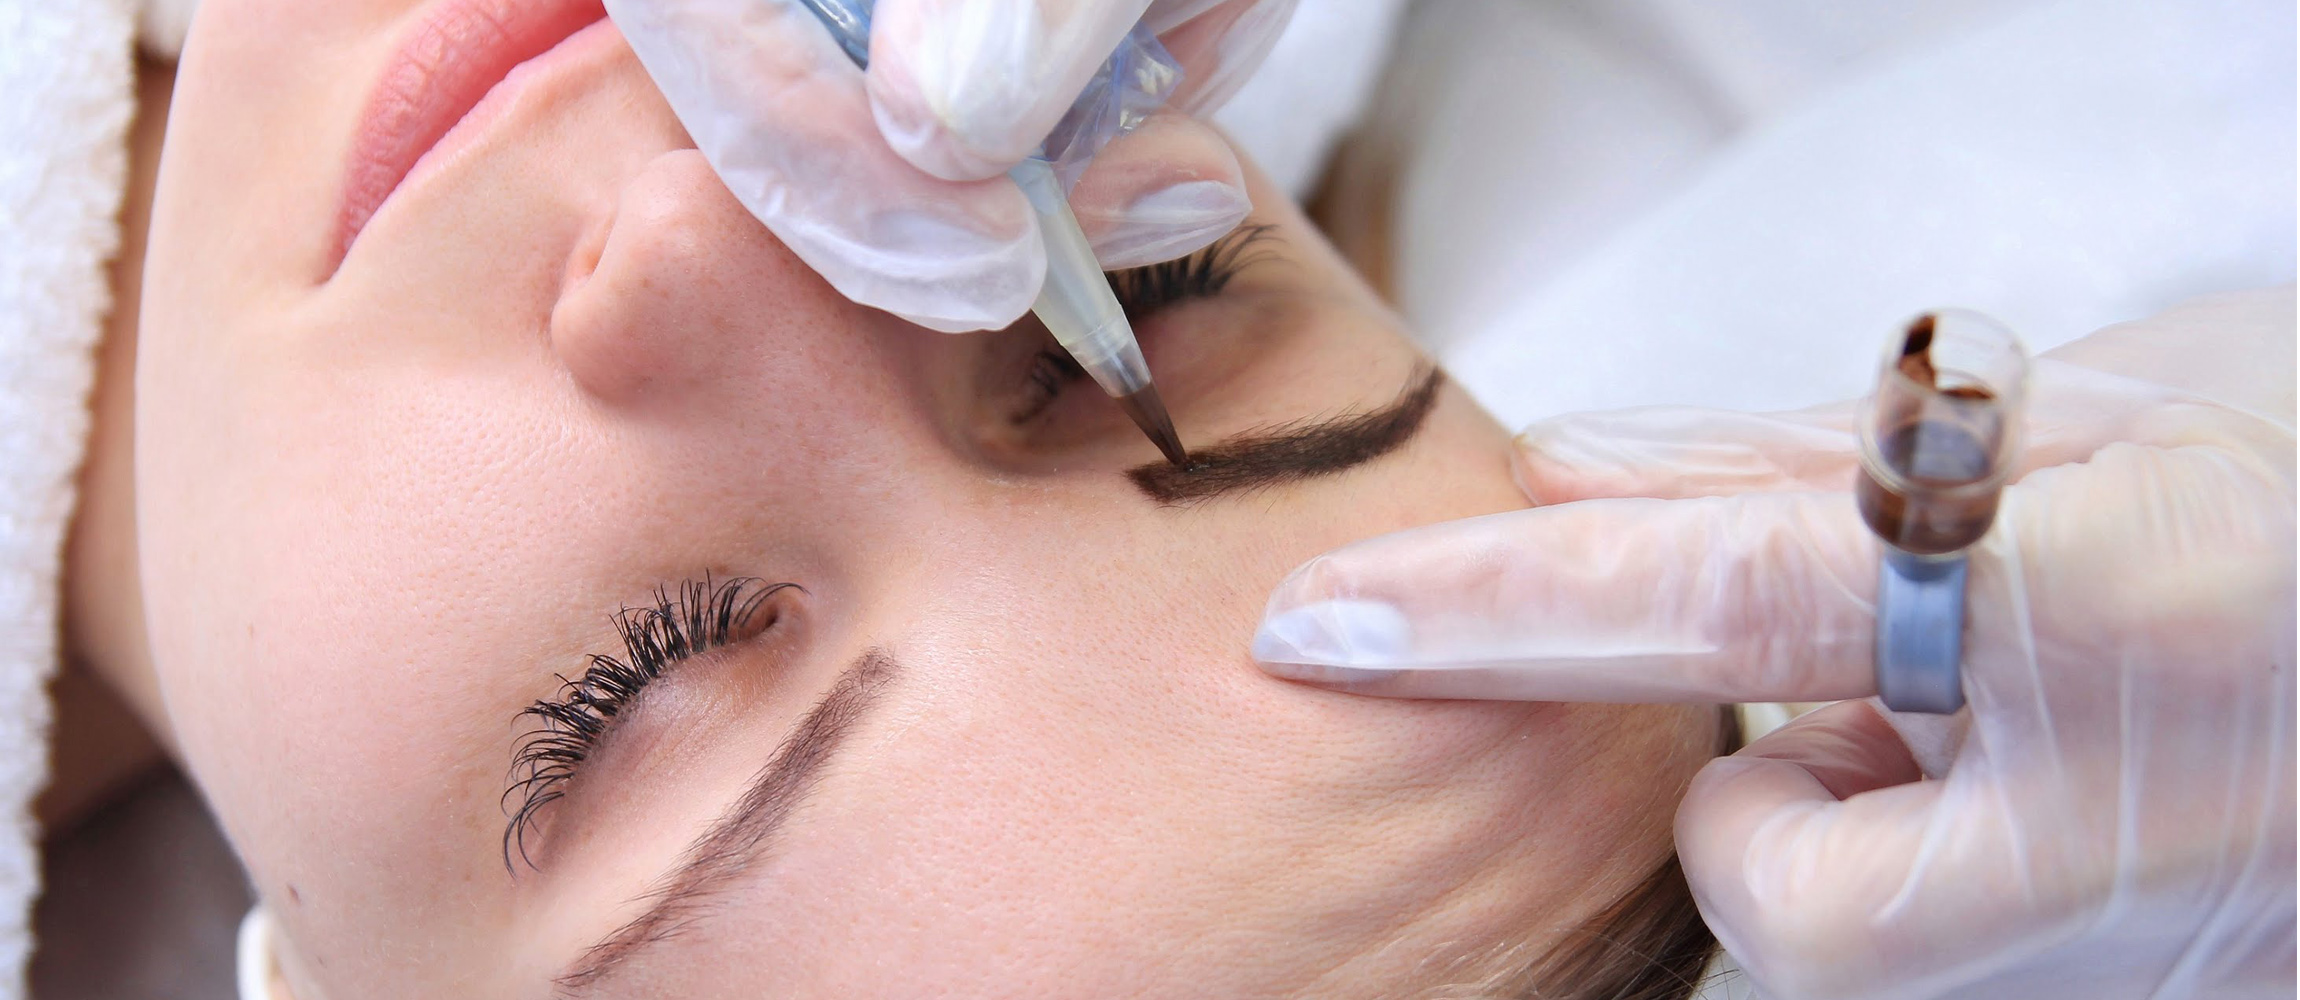 Eye brow restoration Clinic in Bangalore